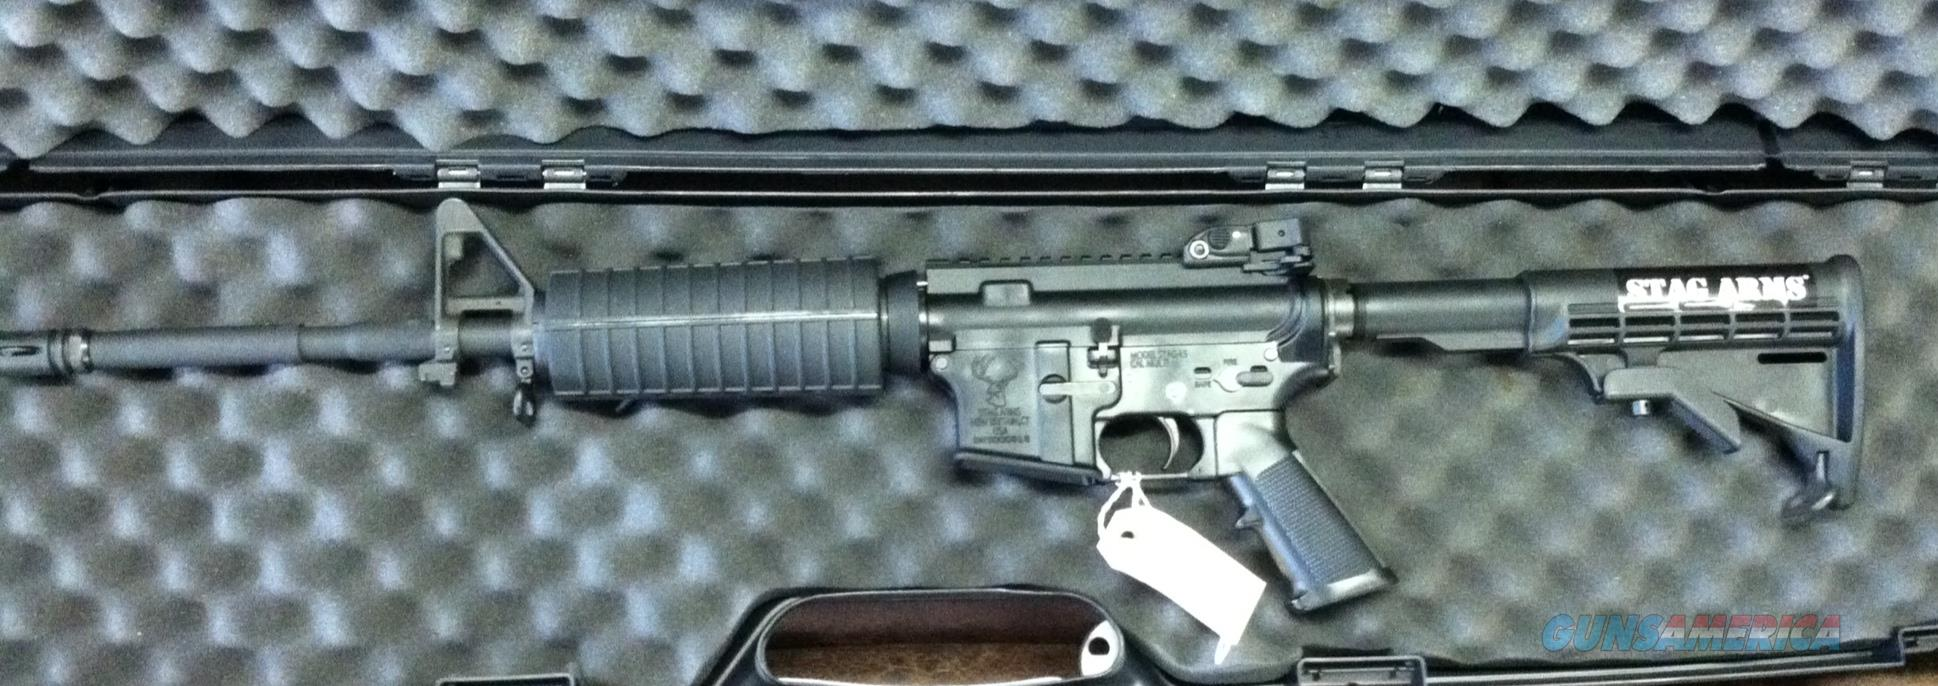 Stag Arms .223 Remington (5.56 NATO)  Guns > Rifles > Stag Arms > Complete Rifles